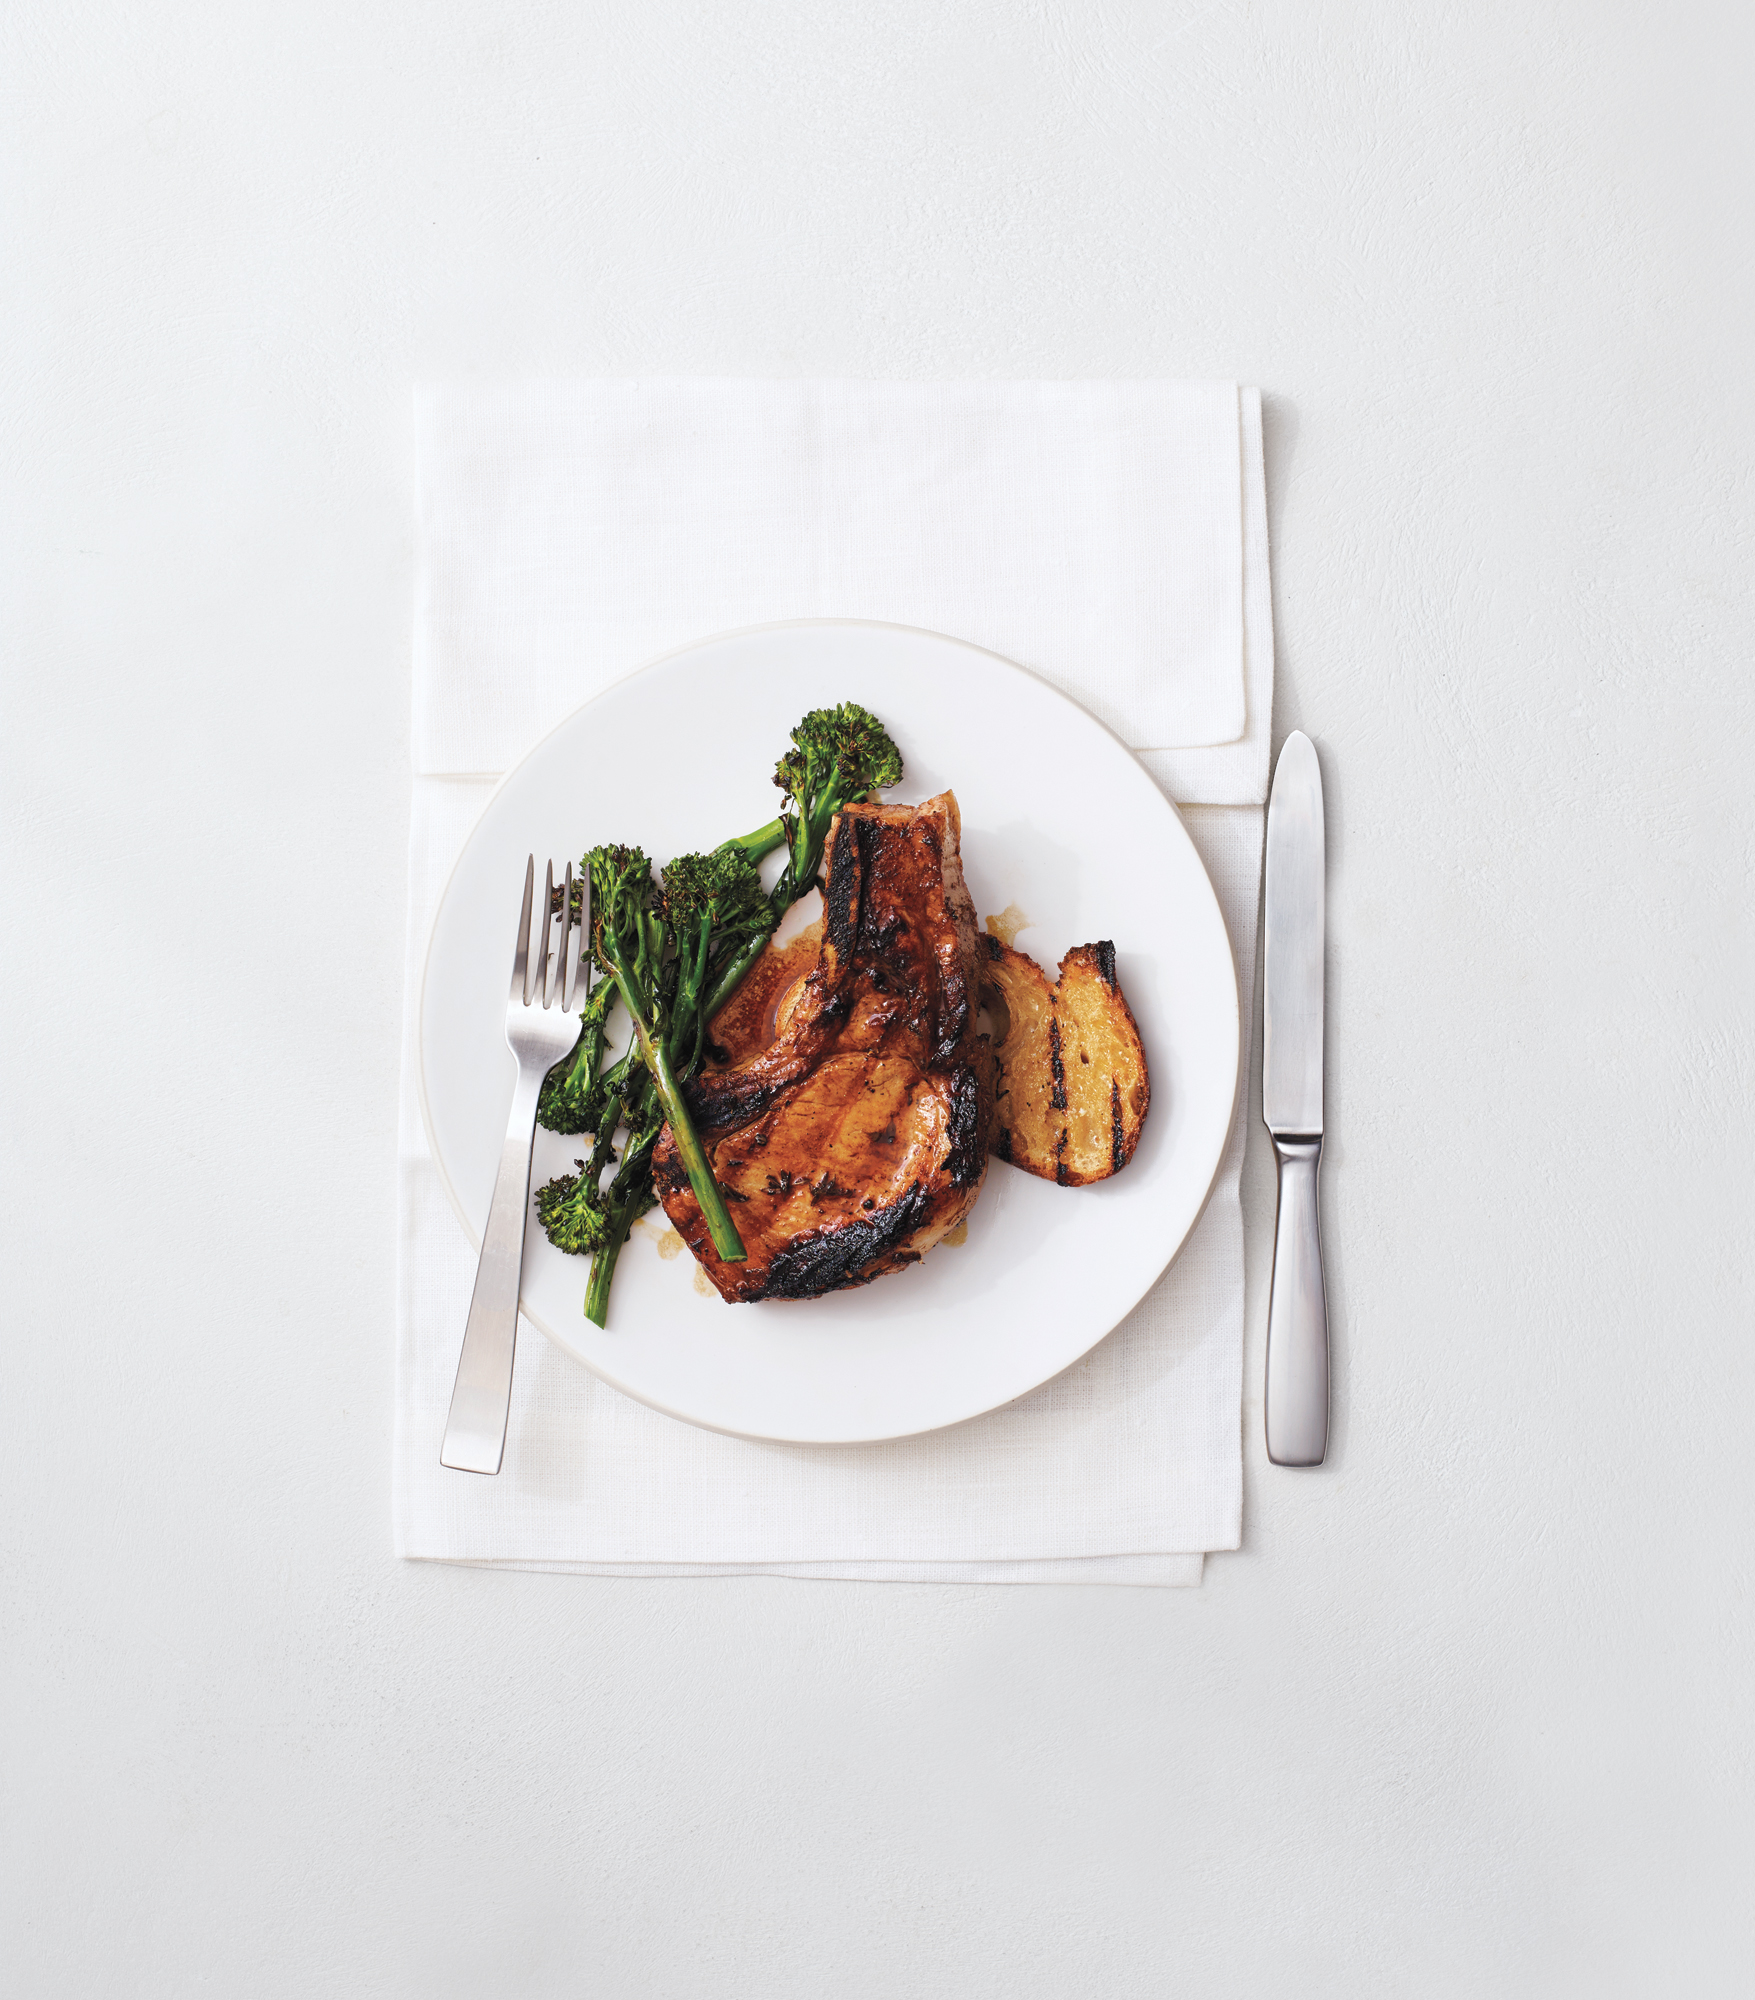 Grilled Pork Chops, Broccolini, and Sourdough Bread